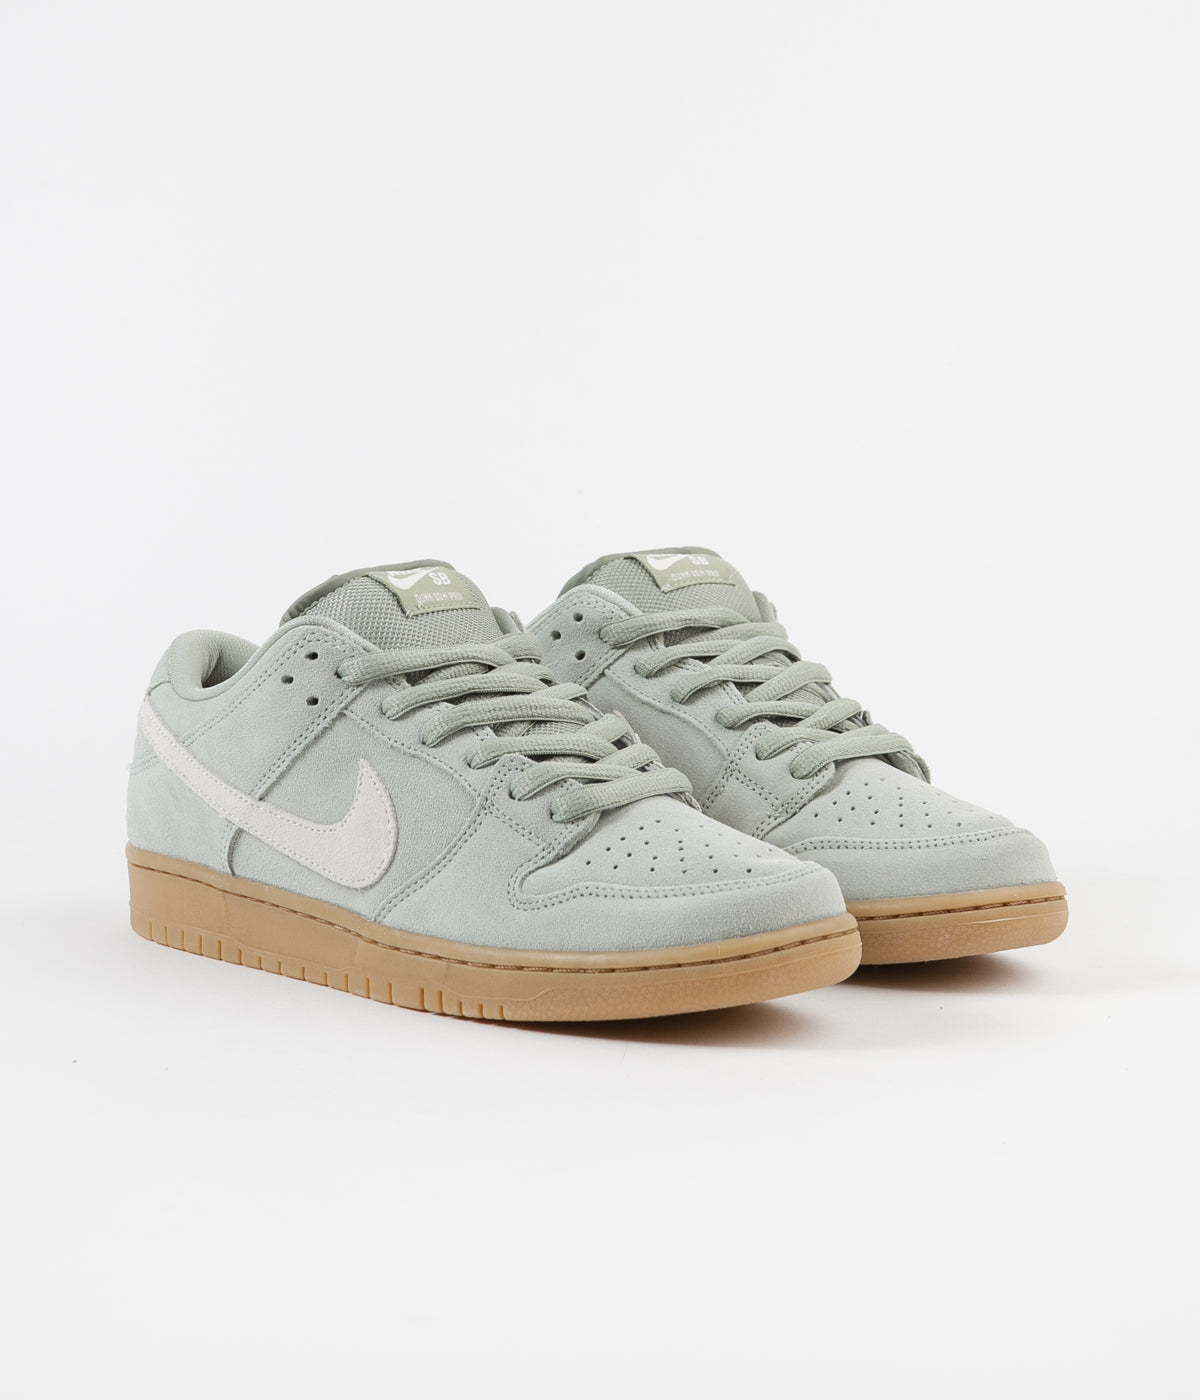 Nike SB Dunk Low Pro Shoes - Jade Horizon / Pale Ivory - Jade Horizon